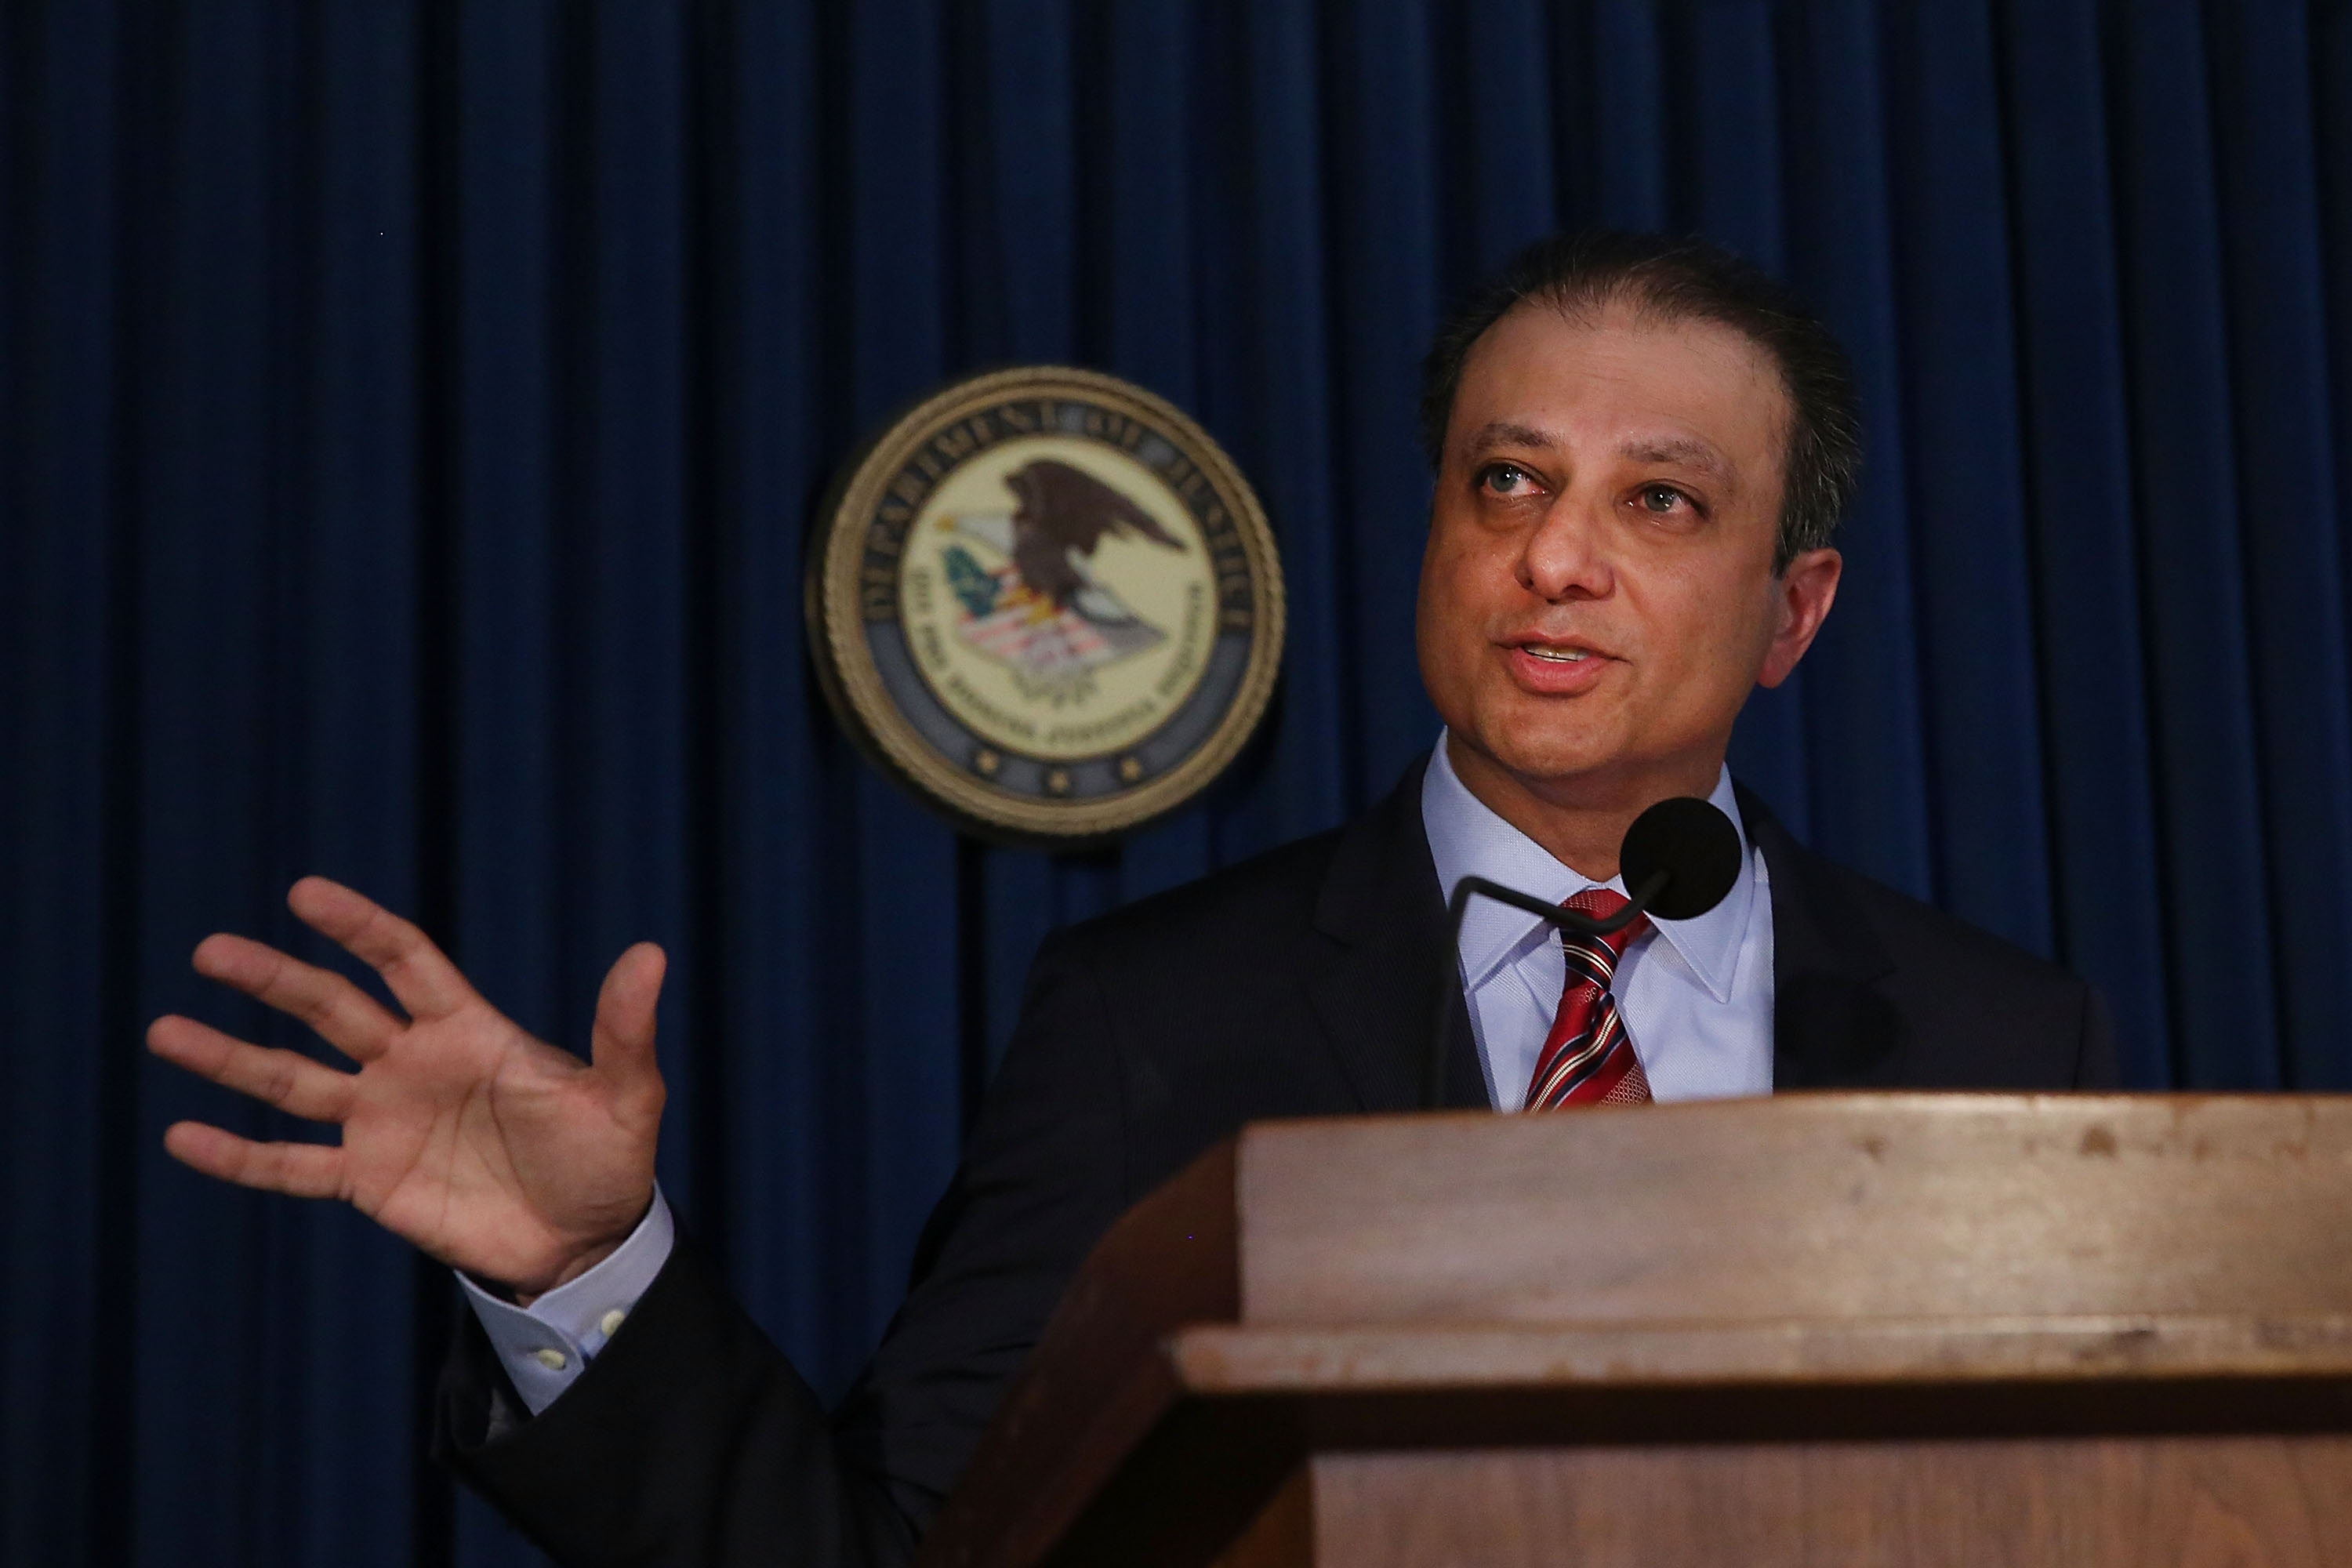 NEW YORK, NY - SEPTEMBER 17:  Manhattan U.S. Attorney Preet Bharara speaks at a news conference in Manhattan to announce that Federal prosecutors have reached an agreement with General Motors over a criminal investigation into how the Detroit automaker broke the law by concealing a deadly problem with small-car ignition switches on September 17, 2015 in New York City.  General Motors will pay $900 million to settle criminal charges in the case which has been tied to at least 124 deaths.  (Photo by Spencer Platt/Getty Images)